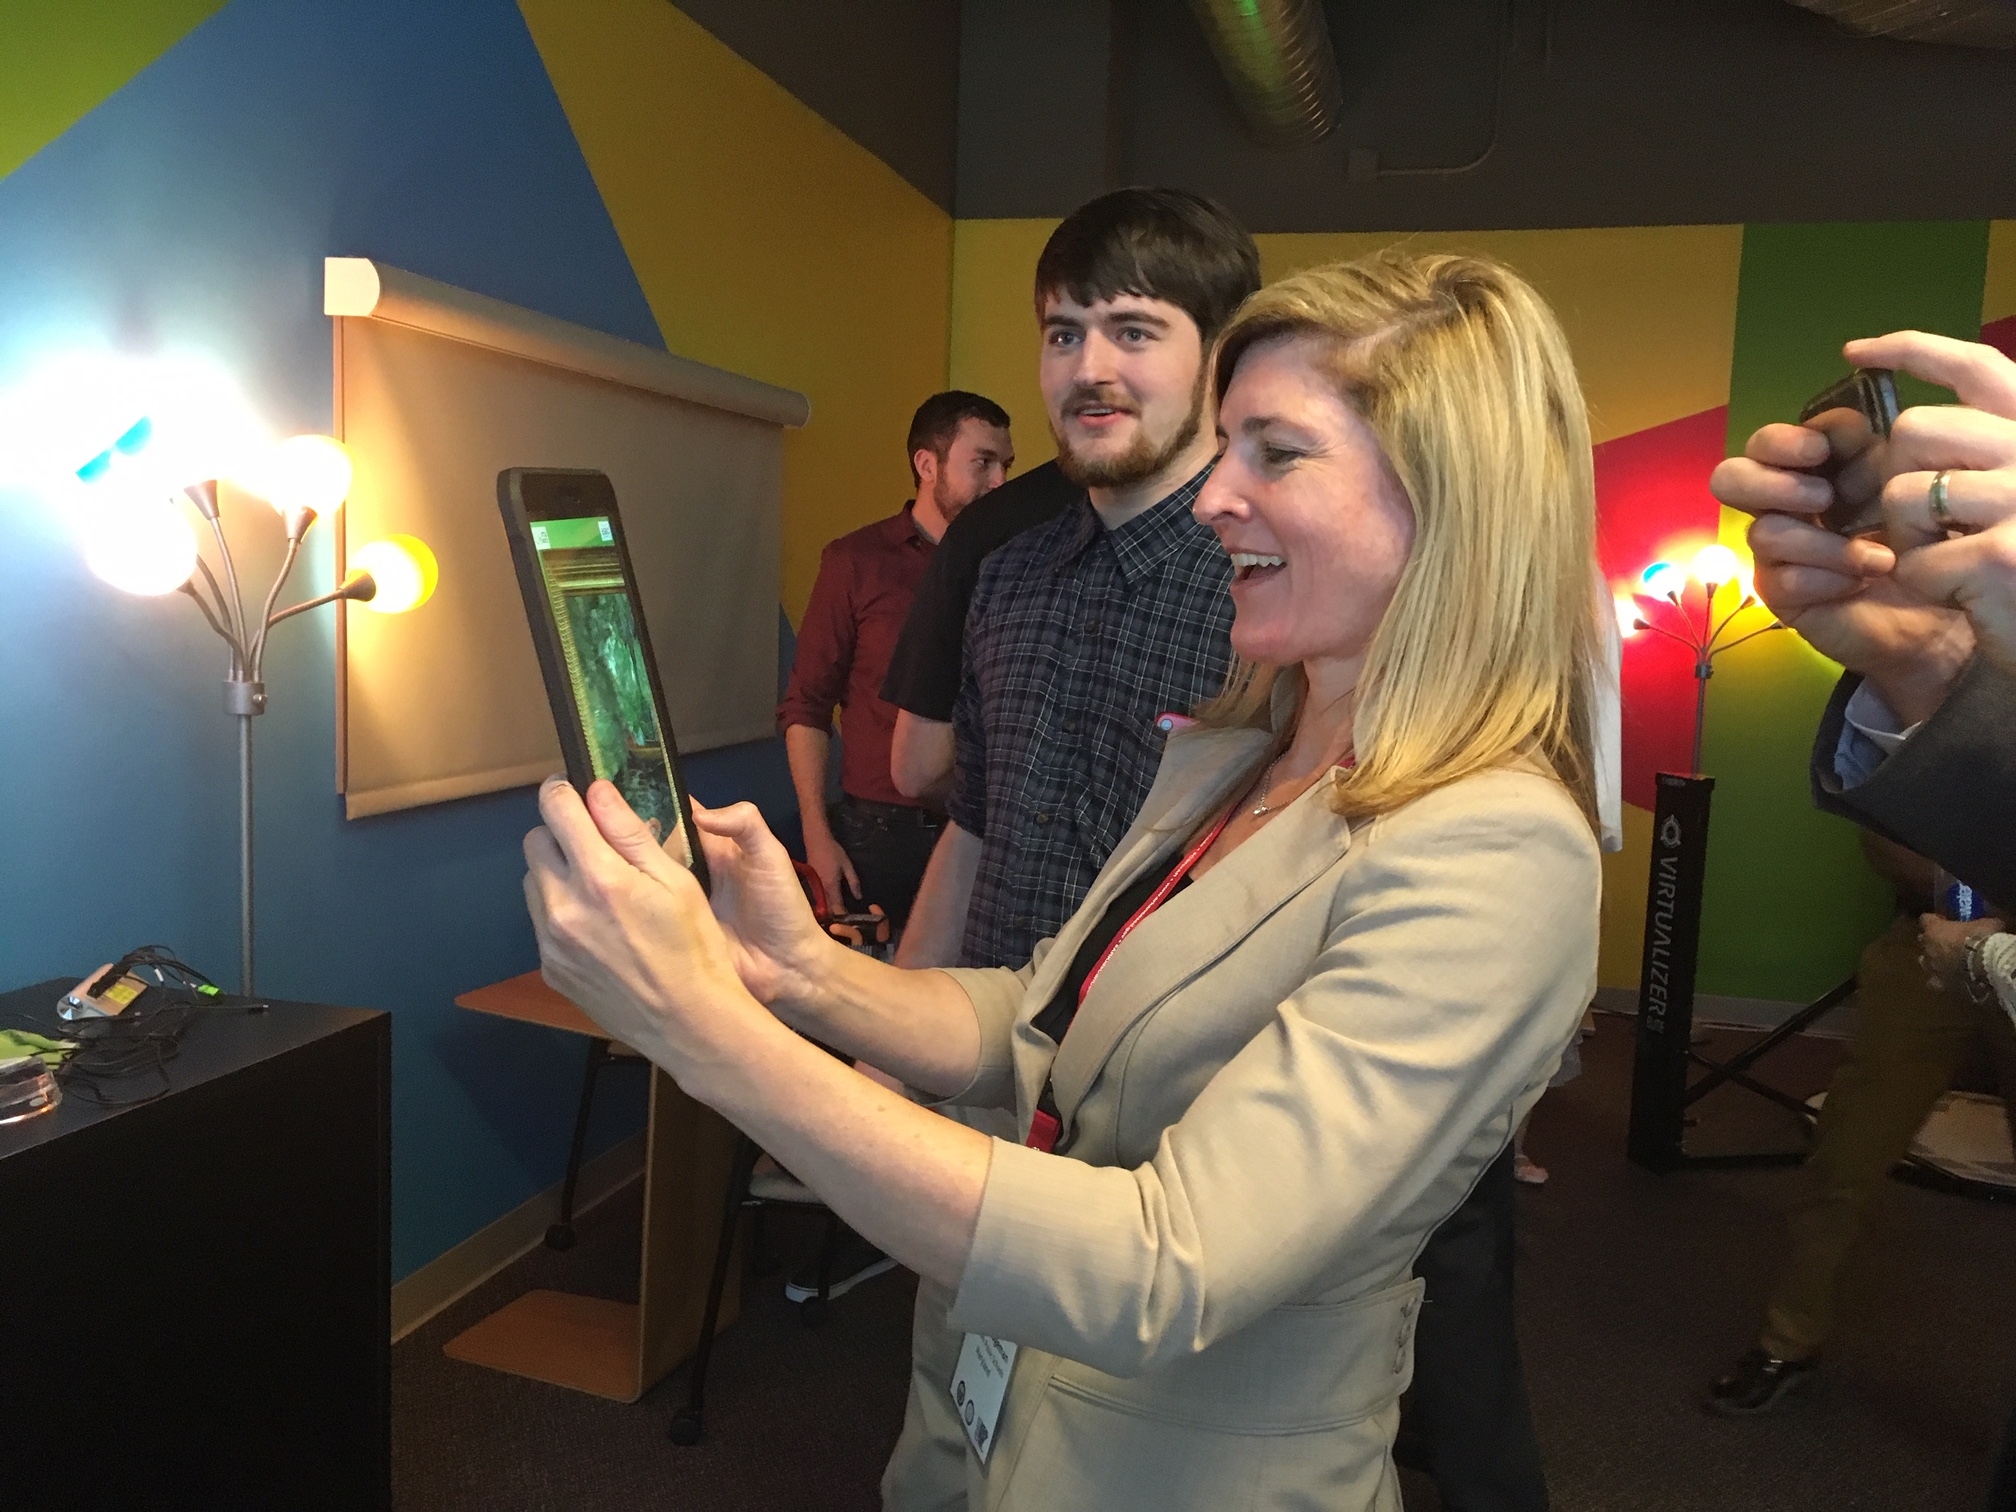 Heather Lageman, a summit participant and executive director of leadership development at Baltimore County Public Schools, uses an educational augmented reality application targeted to art museums.